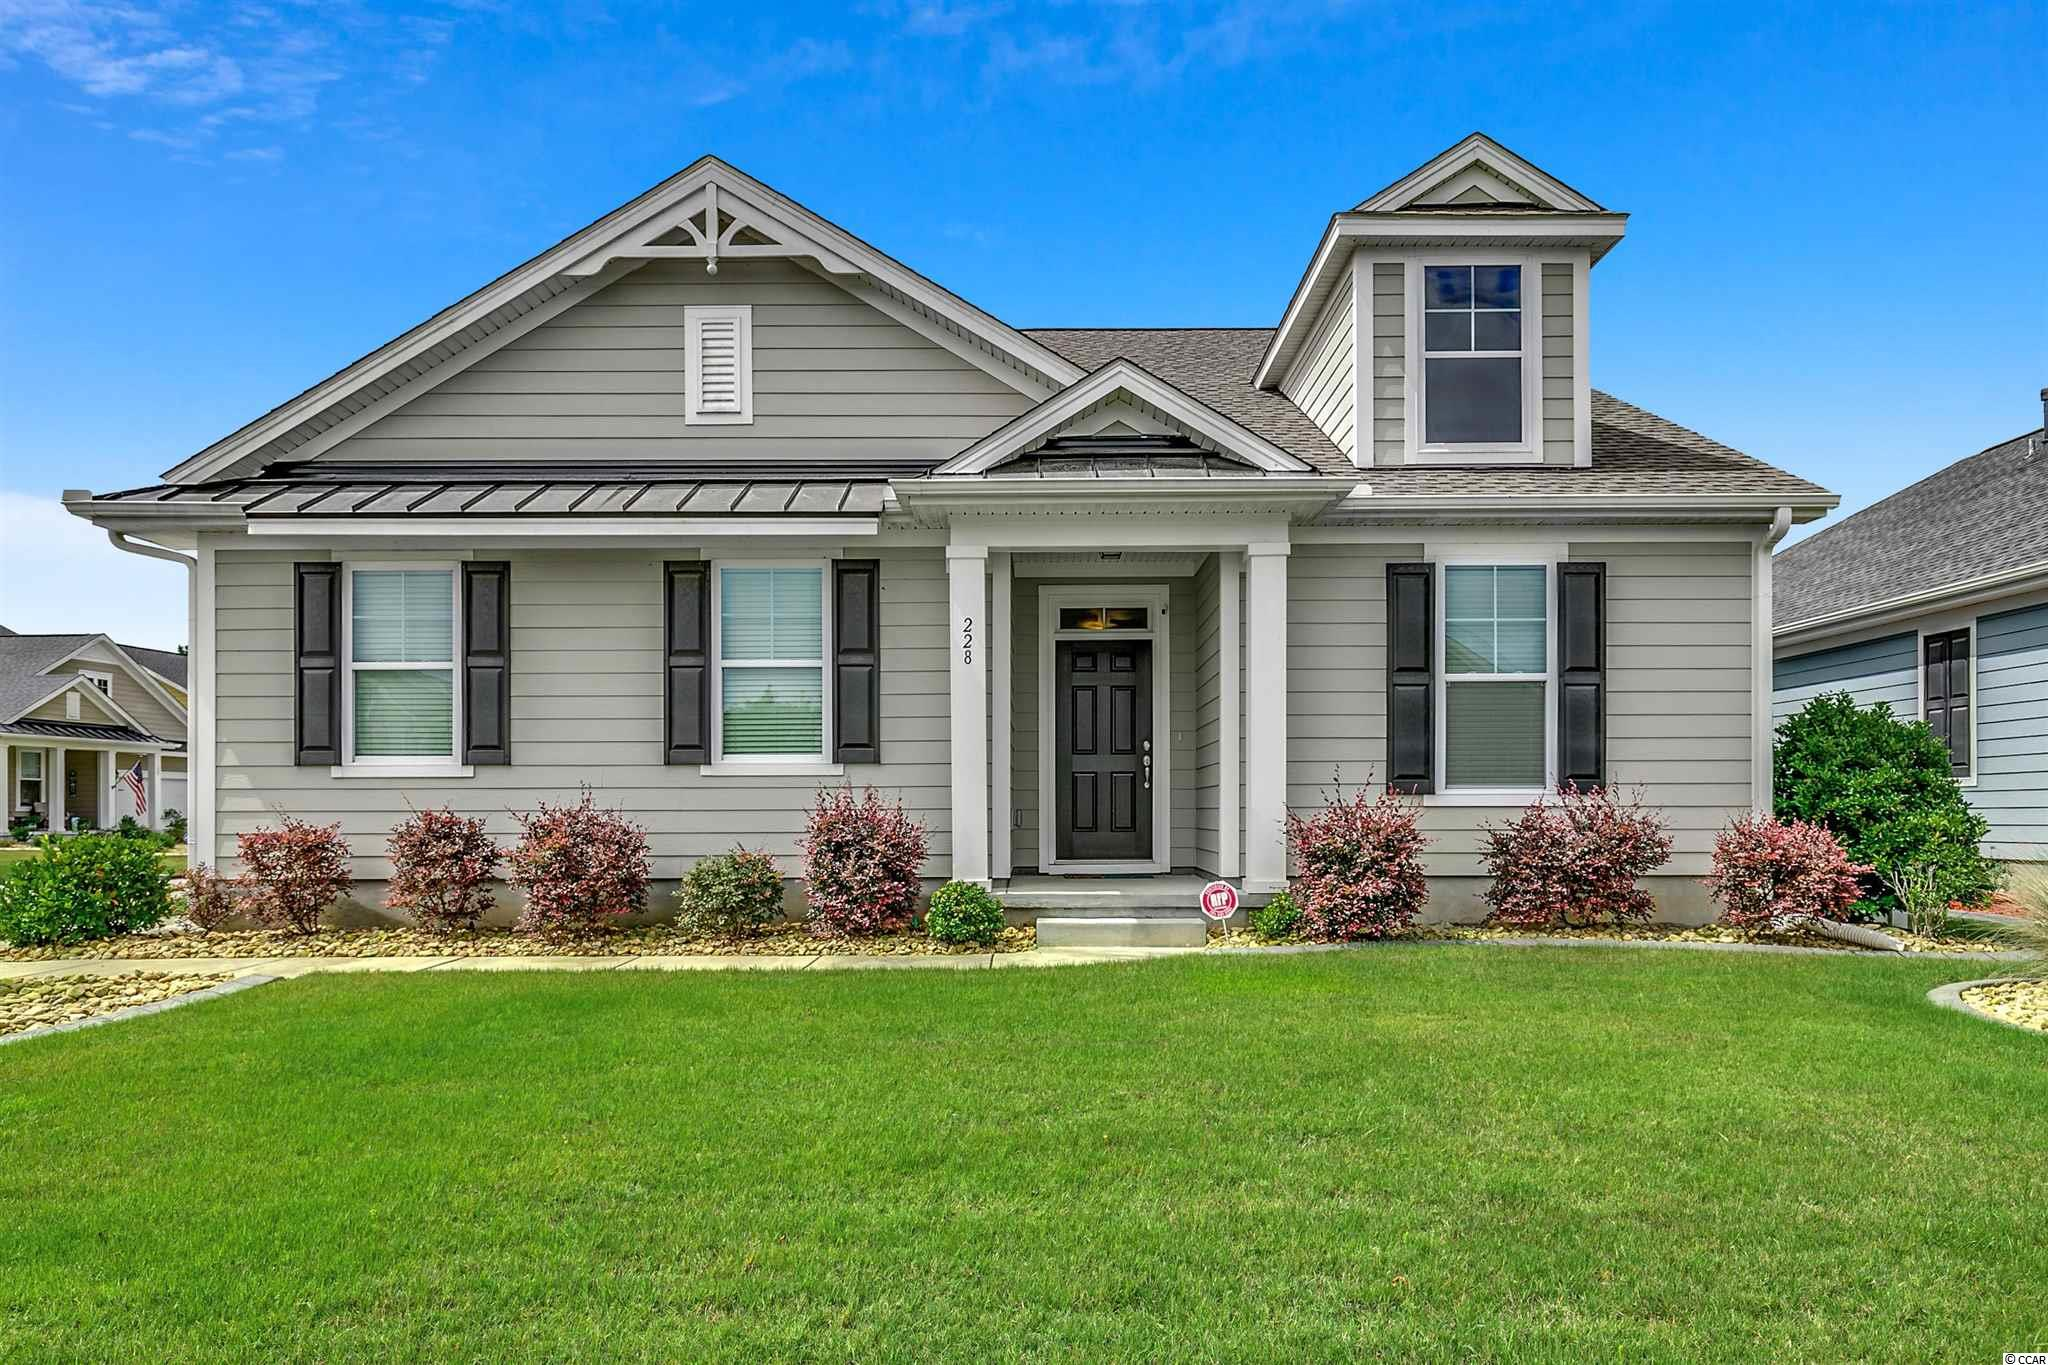 This IMMACULATE home is located in the desirable Prince Creek area of Murrells Inlet within walking distance to South Carolina's only TPC Golf Course. It has only been used as a vacation home with 3 bathrooms, 3 bedrooms, PLUS an office, PLUS a second living area upstairs that could be the 4th bedroom. Features include Natural Gas tankless water heater, stove, and fireplace, upgraded cabinets, quartz countertops in kitchen and all 3 bathrooms, beautiful tile backsplash, tile in all wet areas, beautiful tiled shower in Master Bath, wood flooring throughout main level of home, stainless steel appliances, a large screened porch and a  12x12 concrete pad for outdoor grilling. The community pool is located just down the street from your new home. This community is conveniently located near shopping, restaurants, golf courses, beaches, inlet, and marinas. A Great place to call home!!! LOCATION, CONDITION, AND PRICE, this home has it all